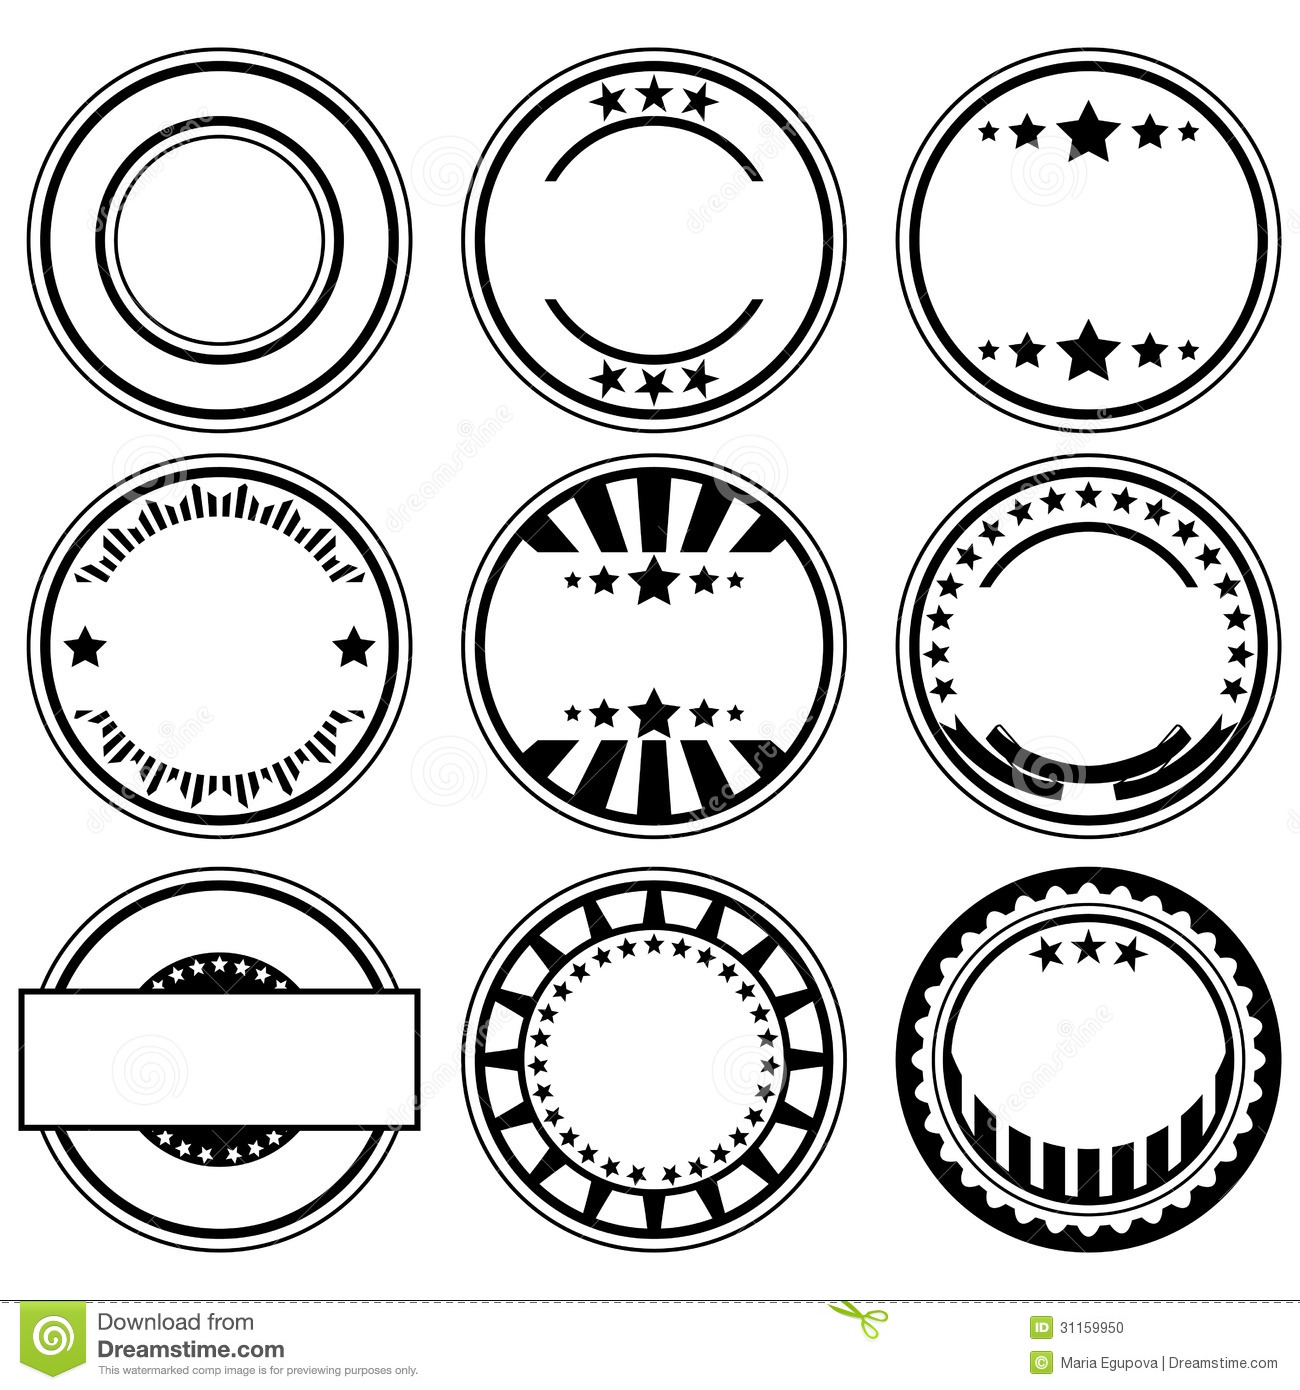 Stamp vector clipart svg free 5+ Stamps Clipart | ClipartLook svg free